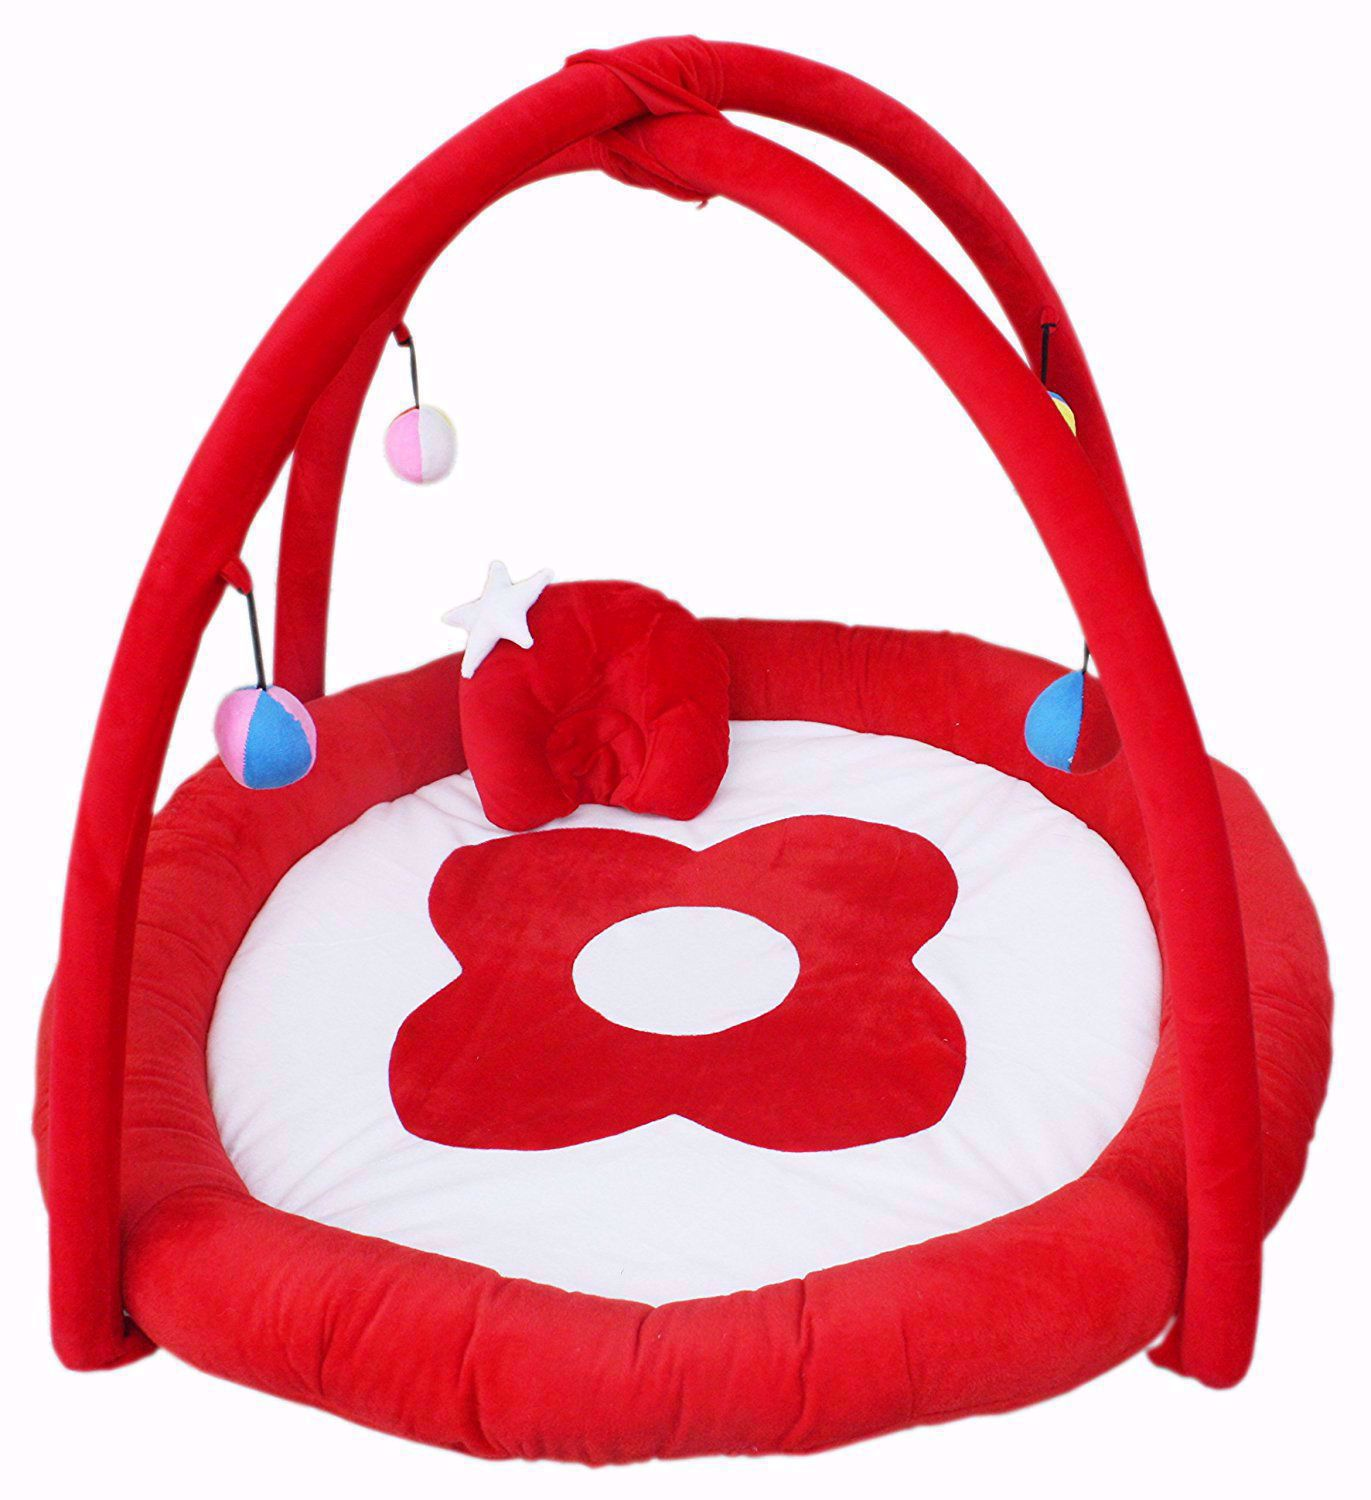 Baby Play gym-red,best play gym online